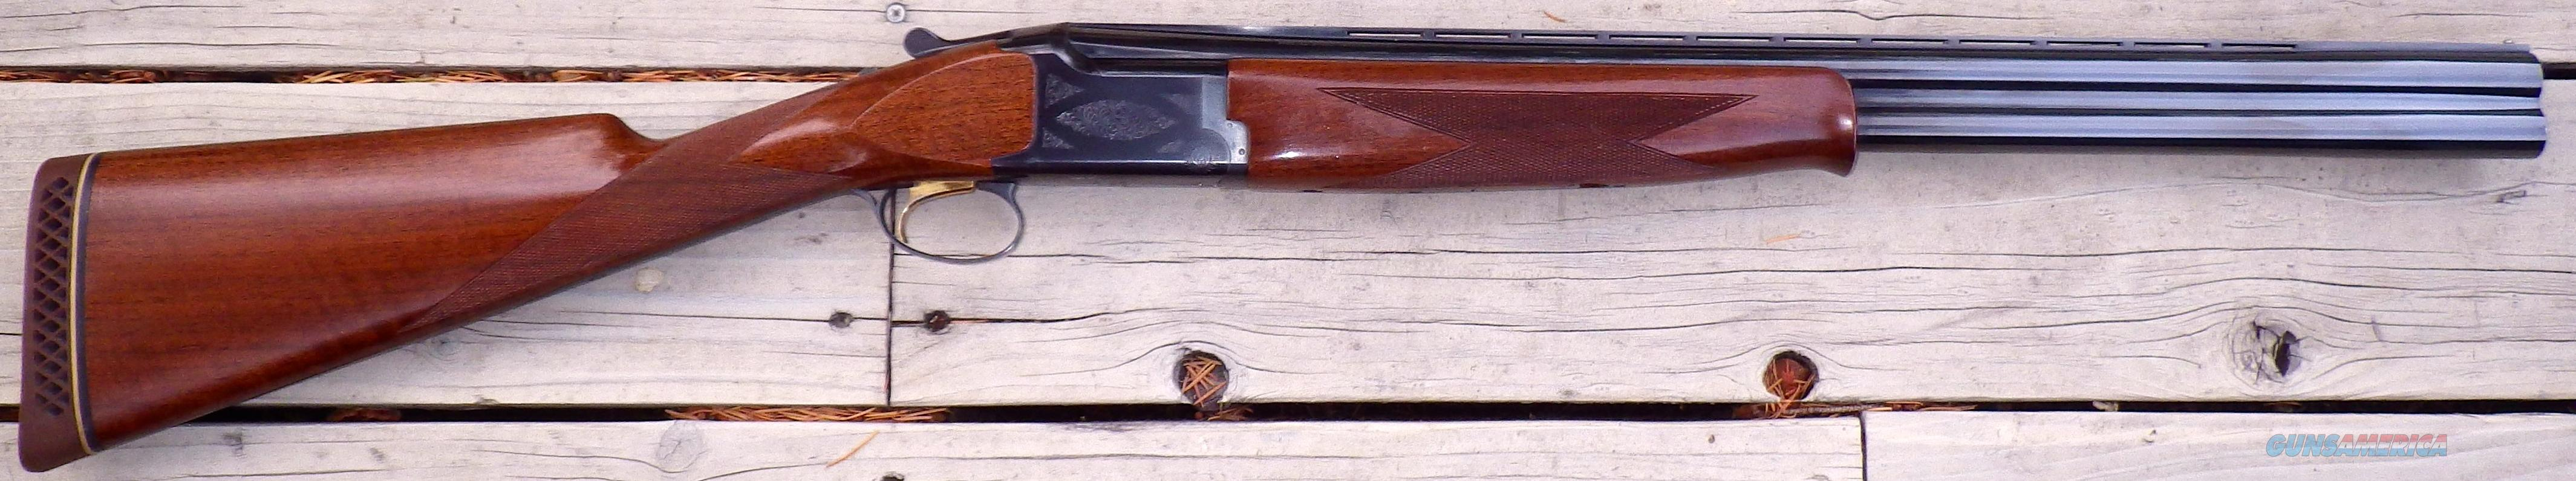 Browning Citori 12, 24-inch, 2.75-inch, straight grip  Guns > Shotguns > Browning Shotguns > Over Unders > Citori > Hunting